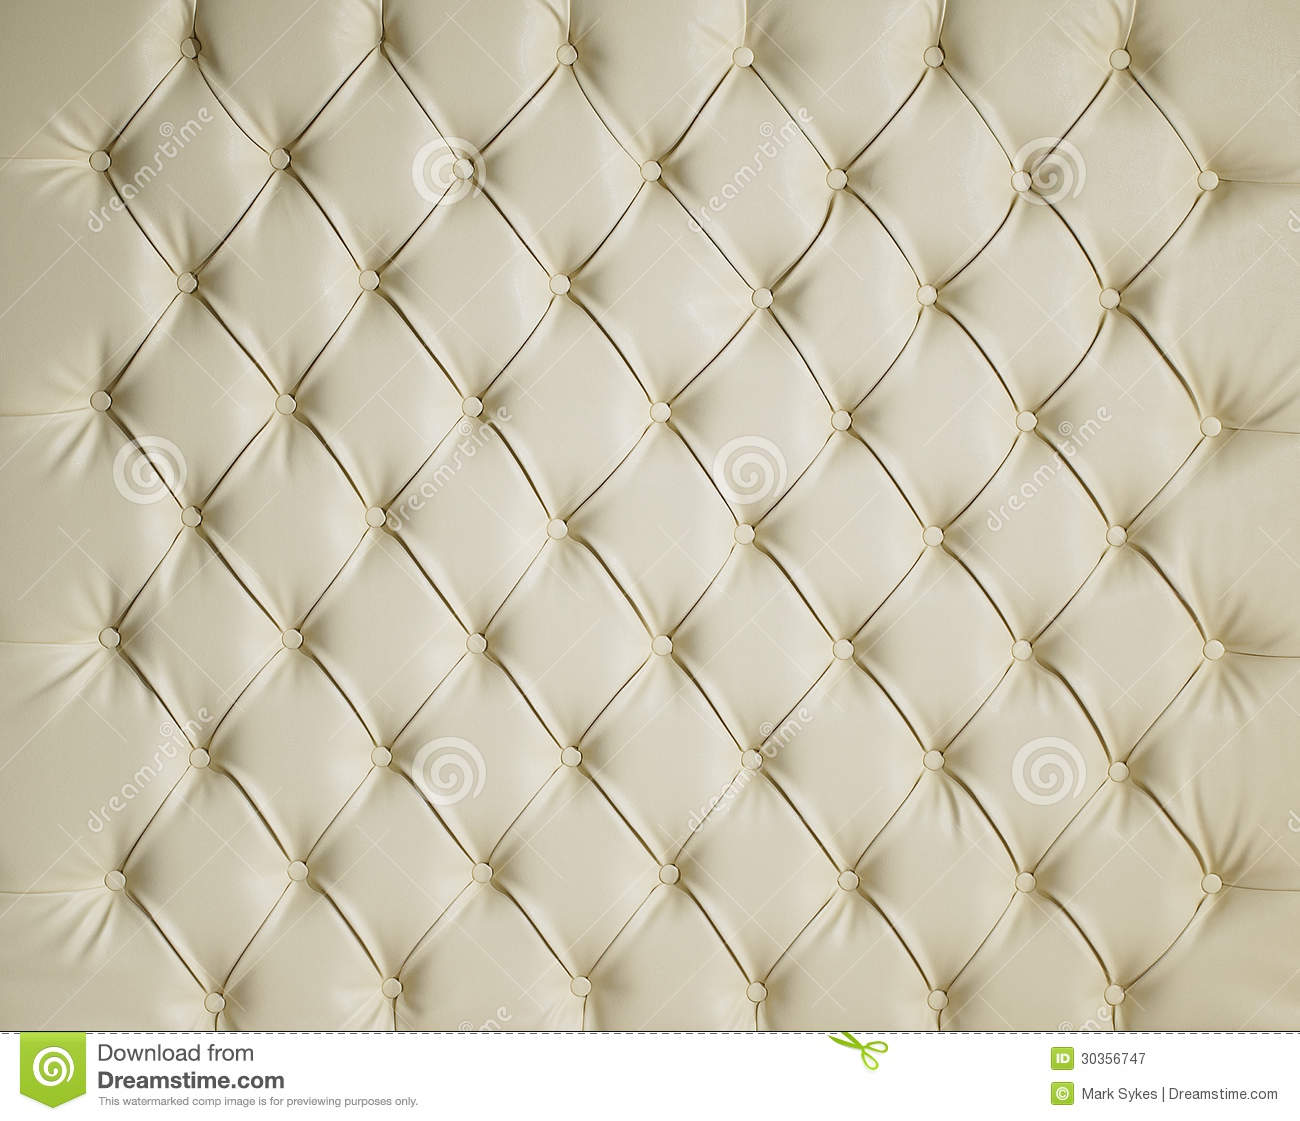 Cream Leather Padded Studded Luxury Background Stock Image